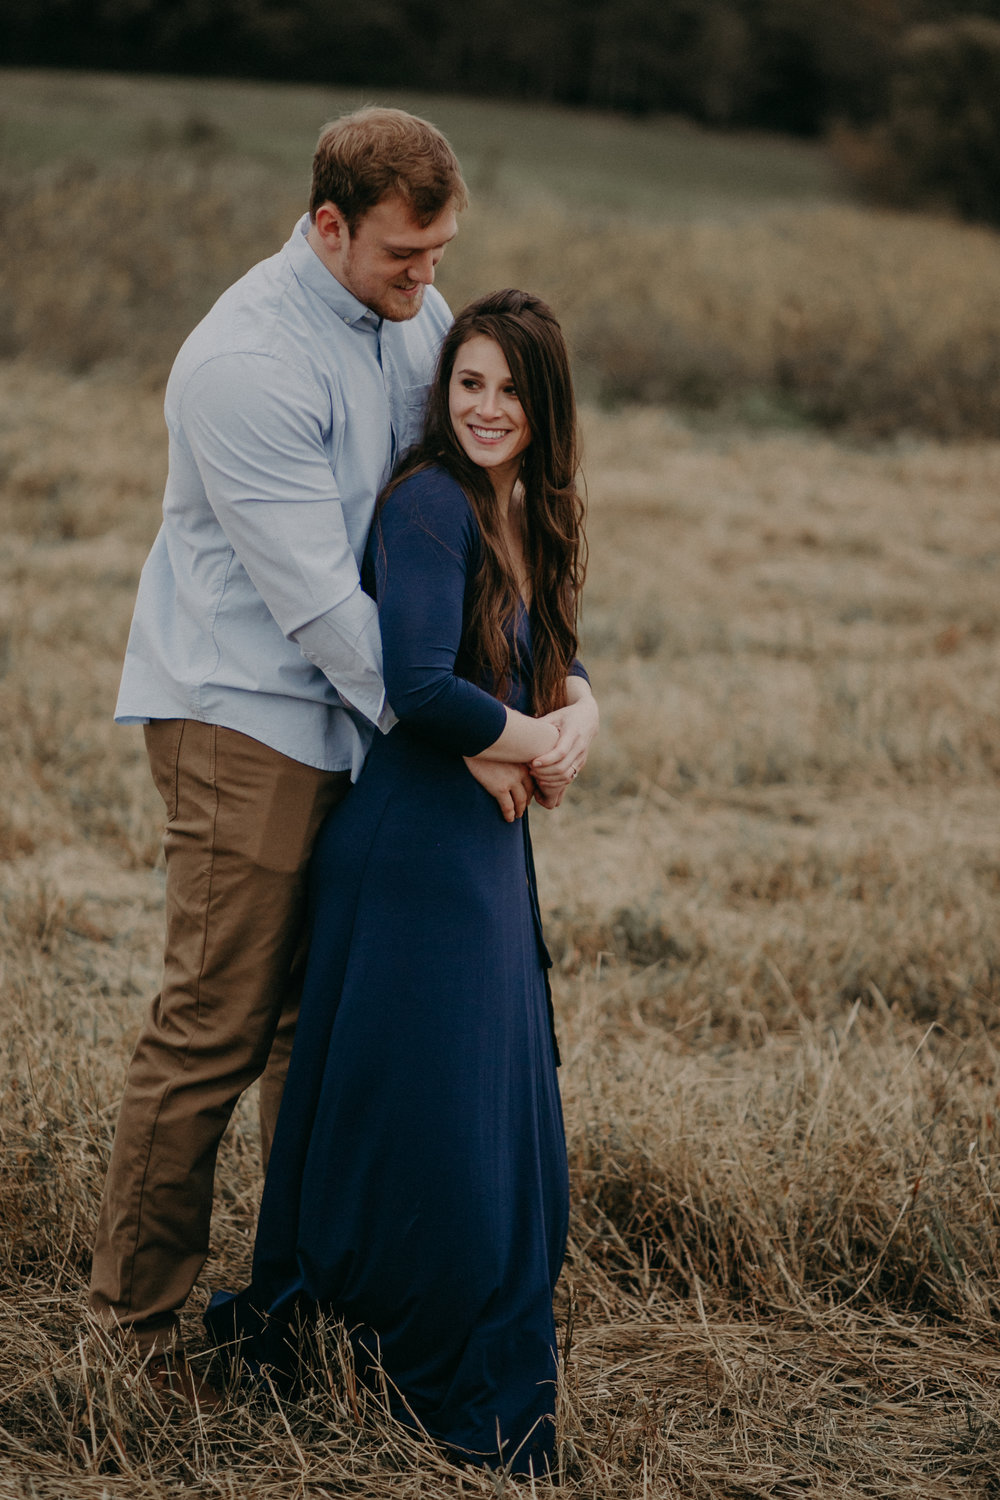 A Hastings MN engagement session in a field overlooking the St Croix River